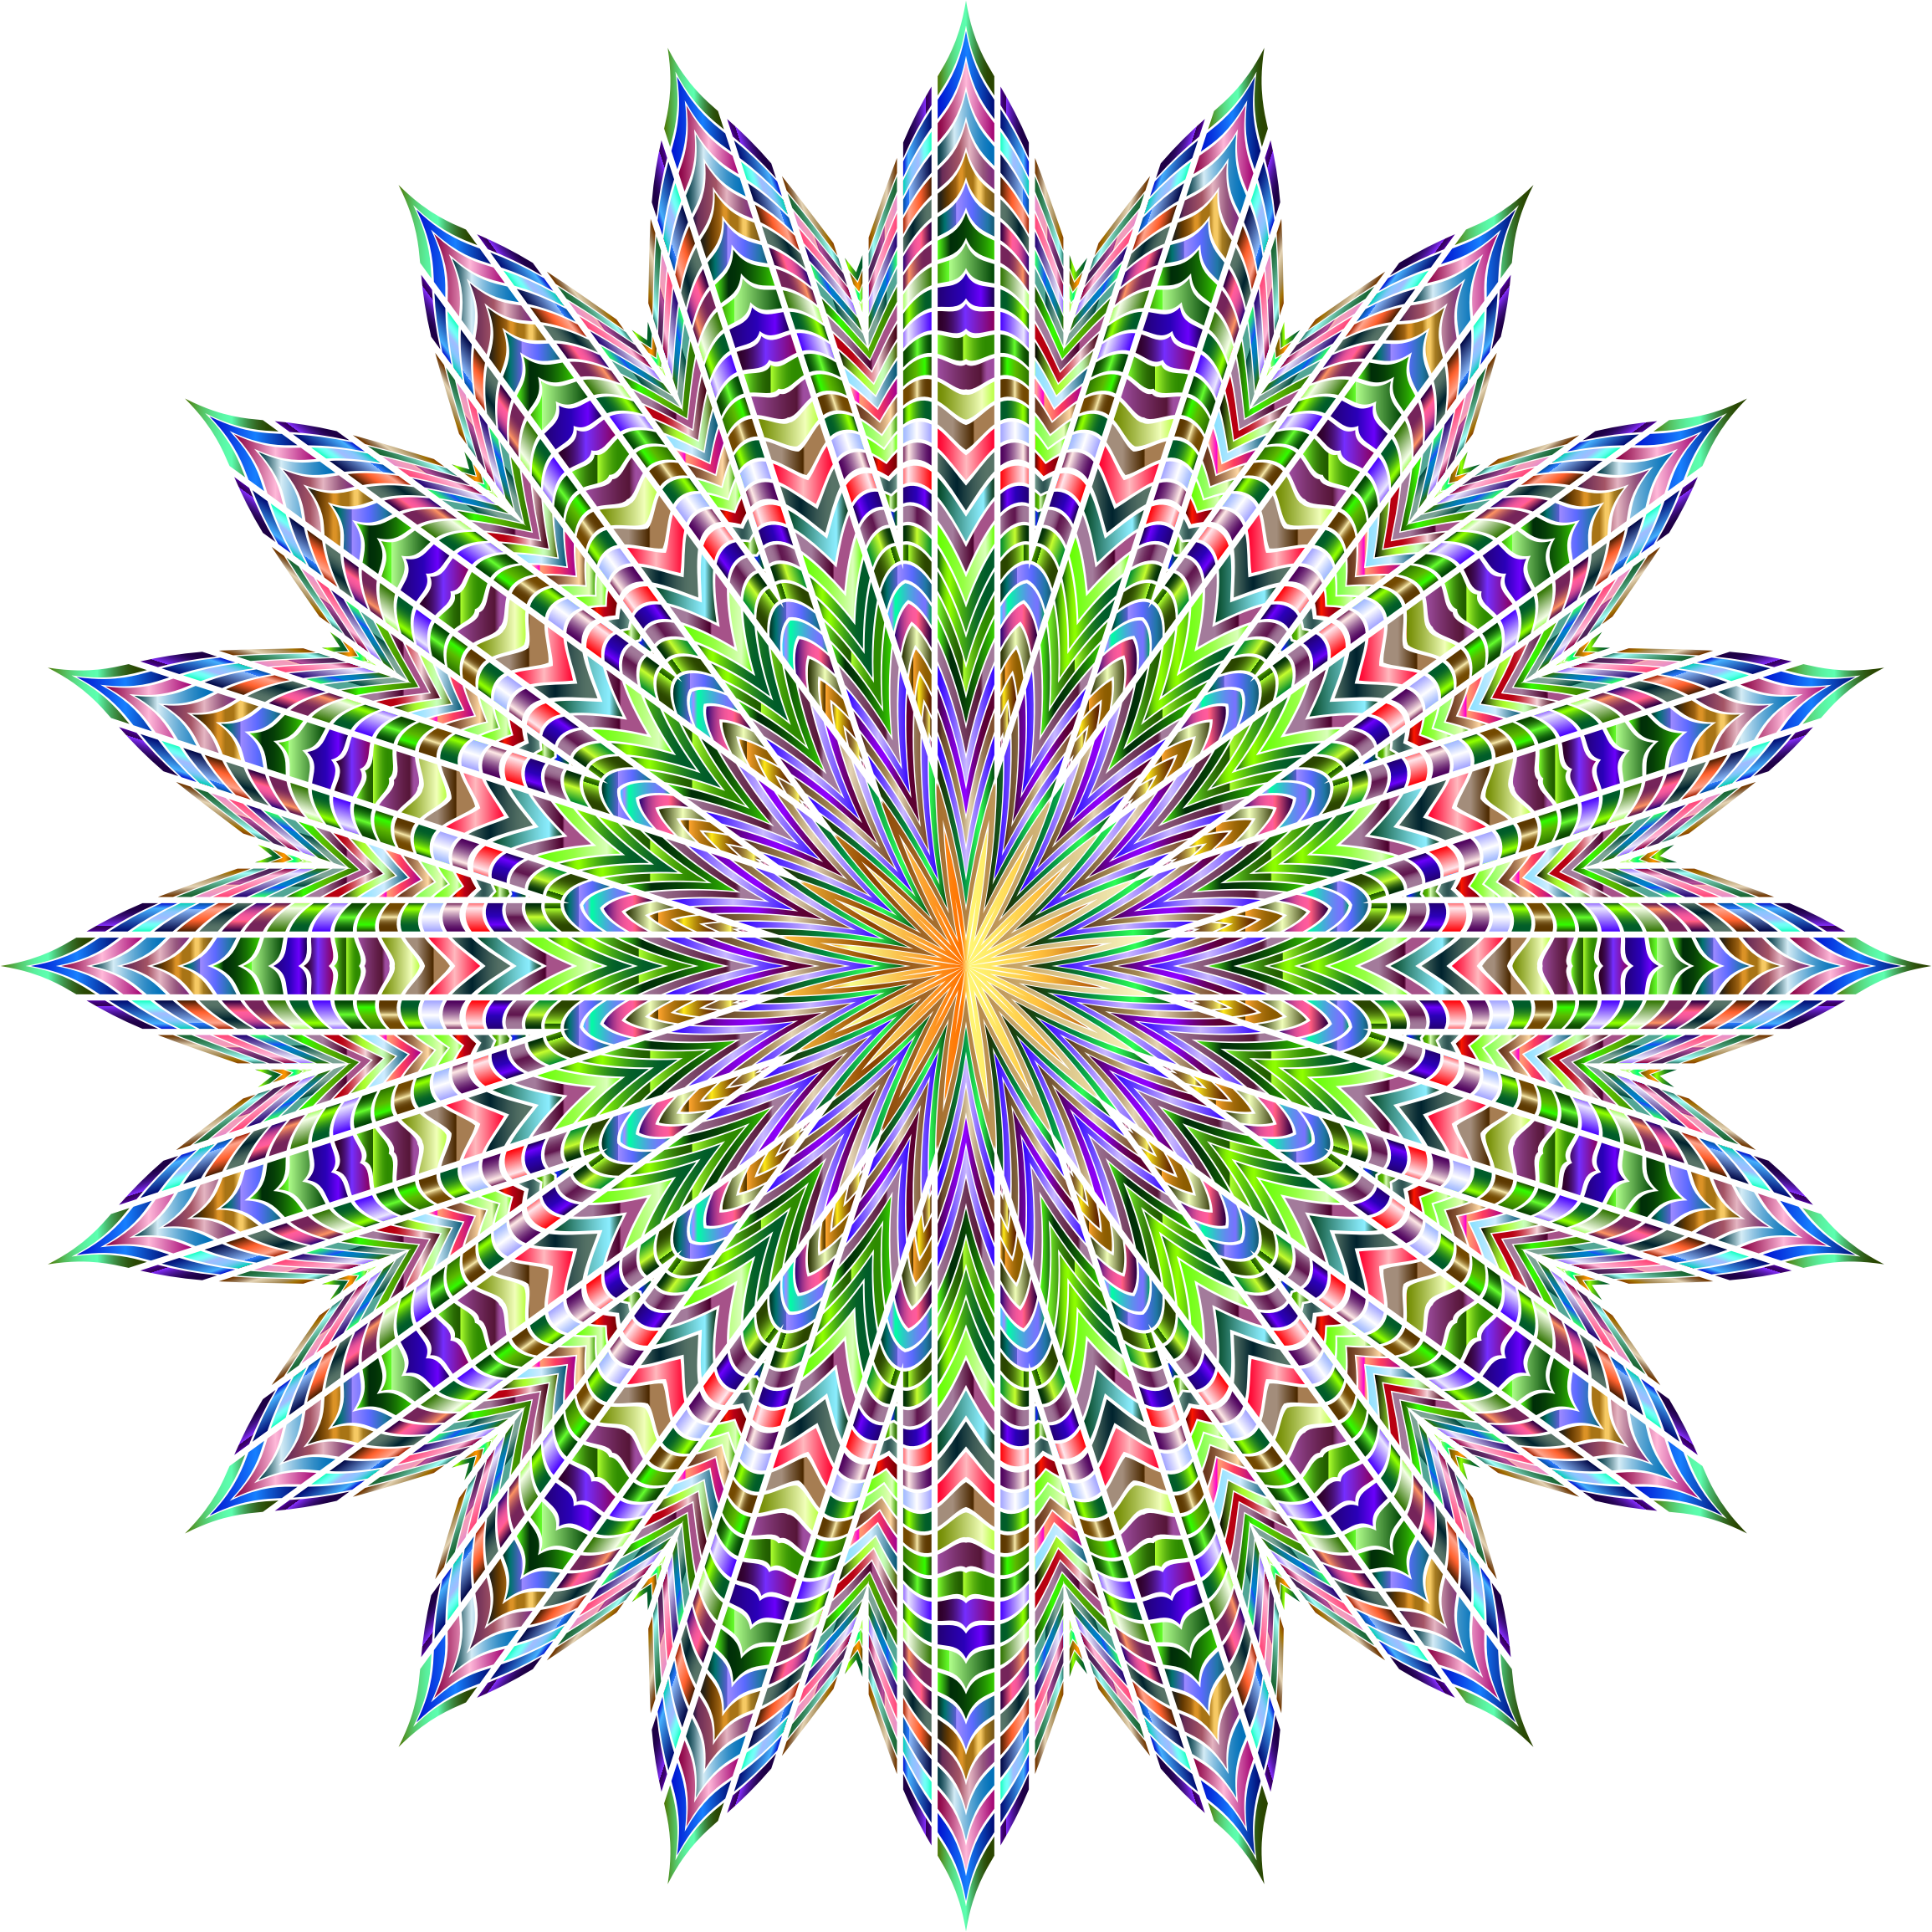 Chromatic Geometric Mandala No Background by GDJ